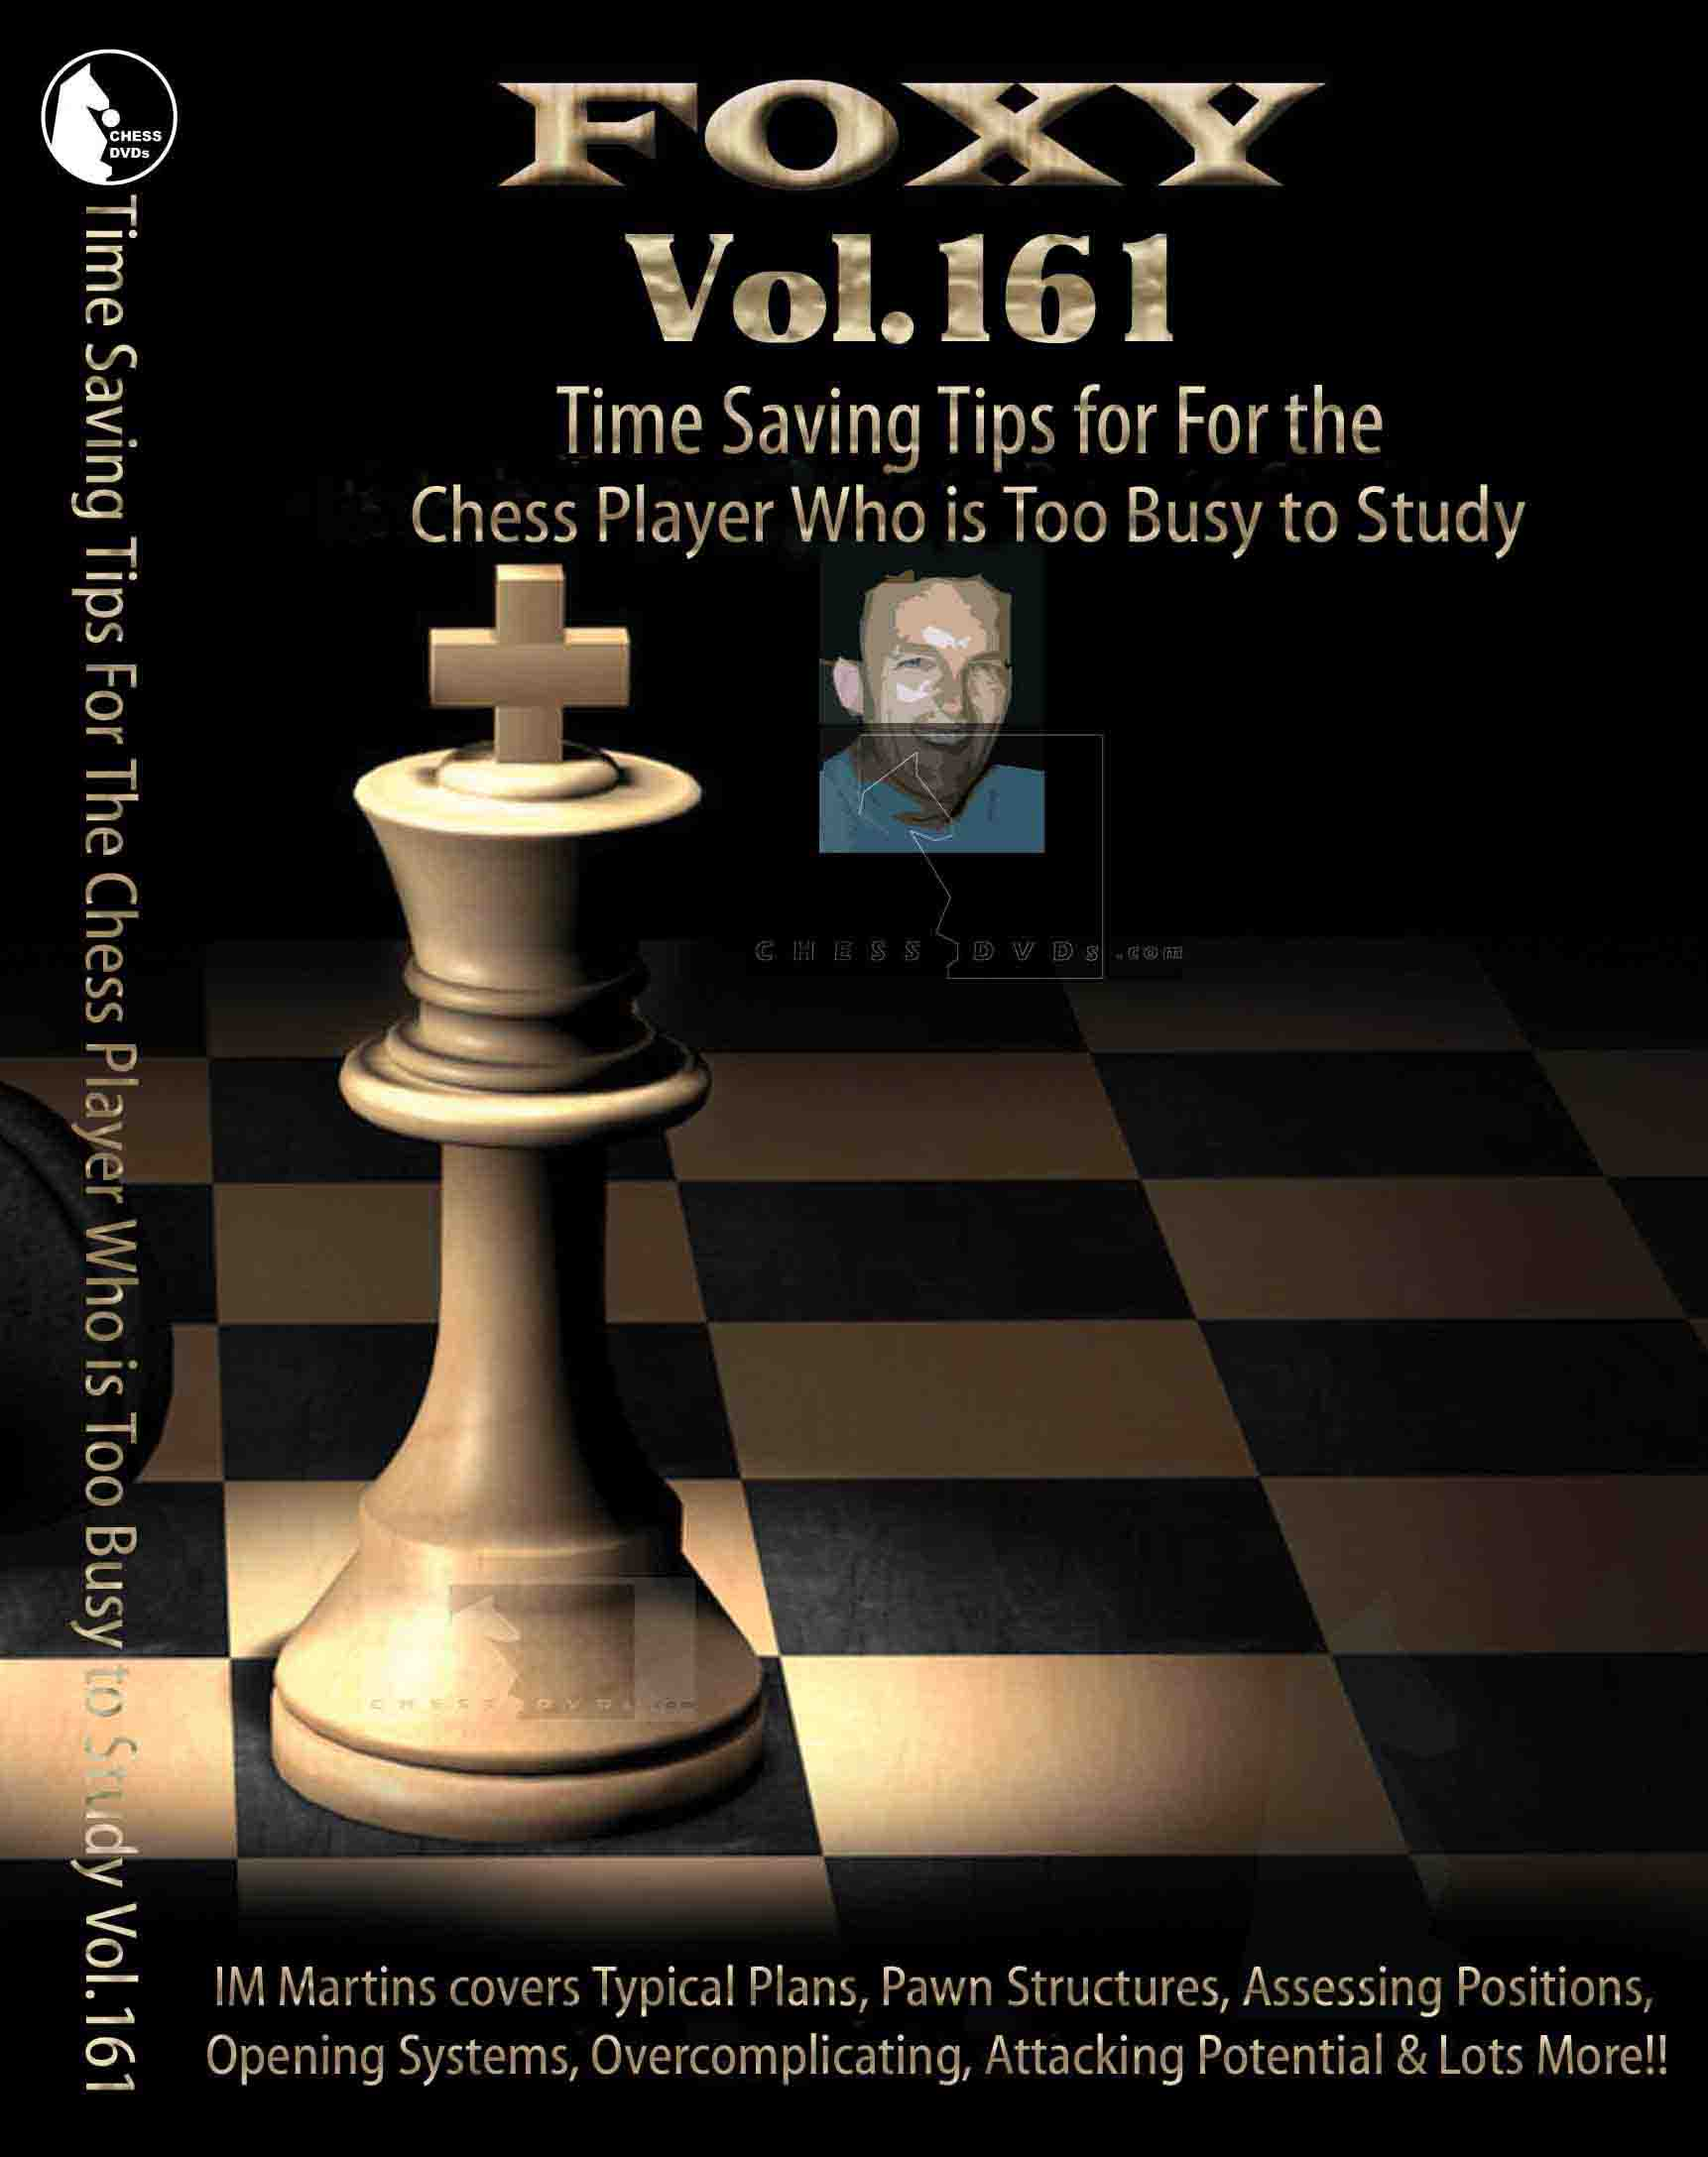 Volume 0161: Time Saving Tip for the_Chessplayer to Busy to Stud